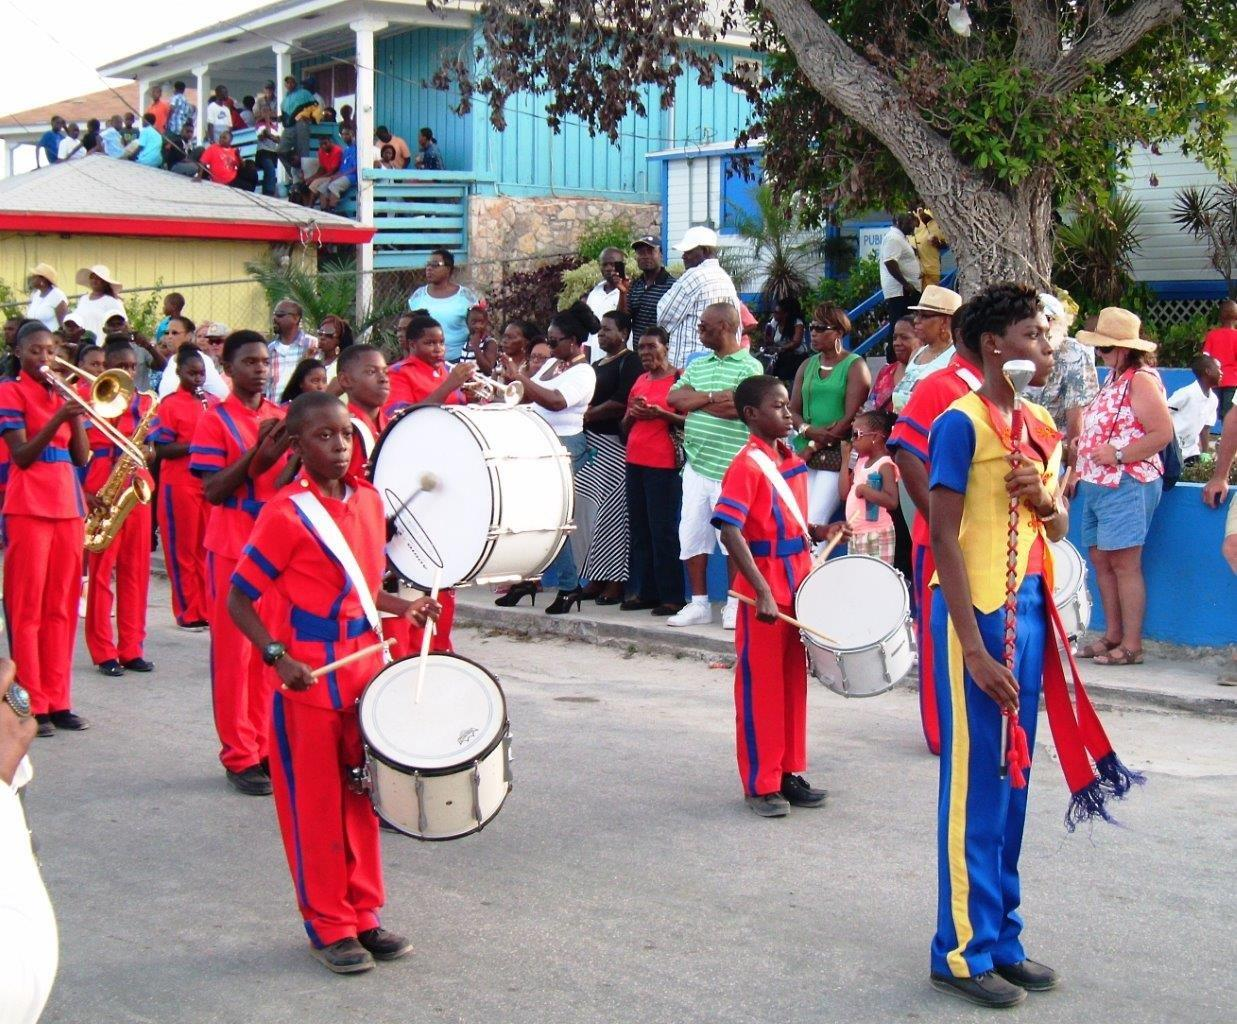 We were treated to a parade with marching bands. This one was from one of the local schools. I felt like I was back home in New Orleans!